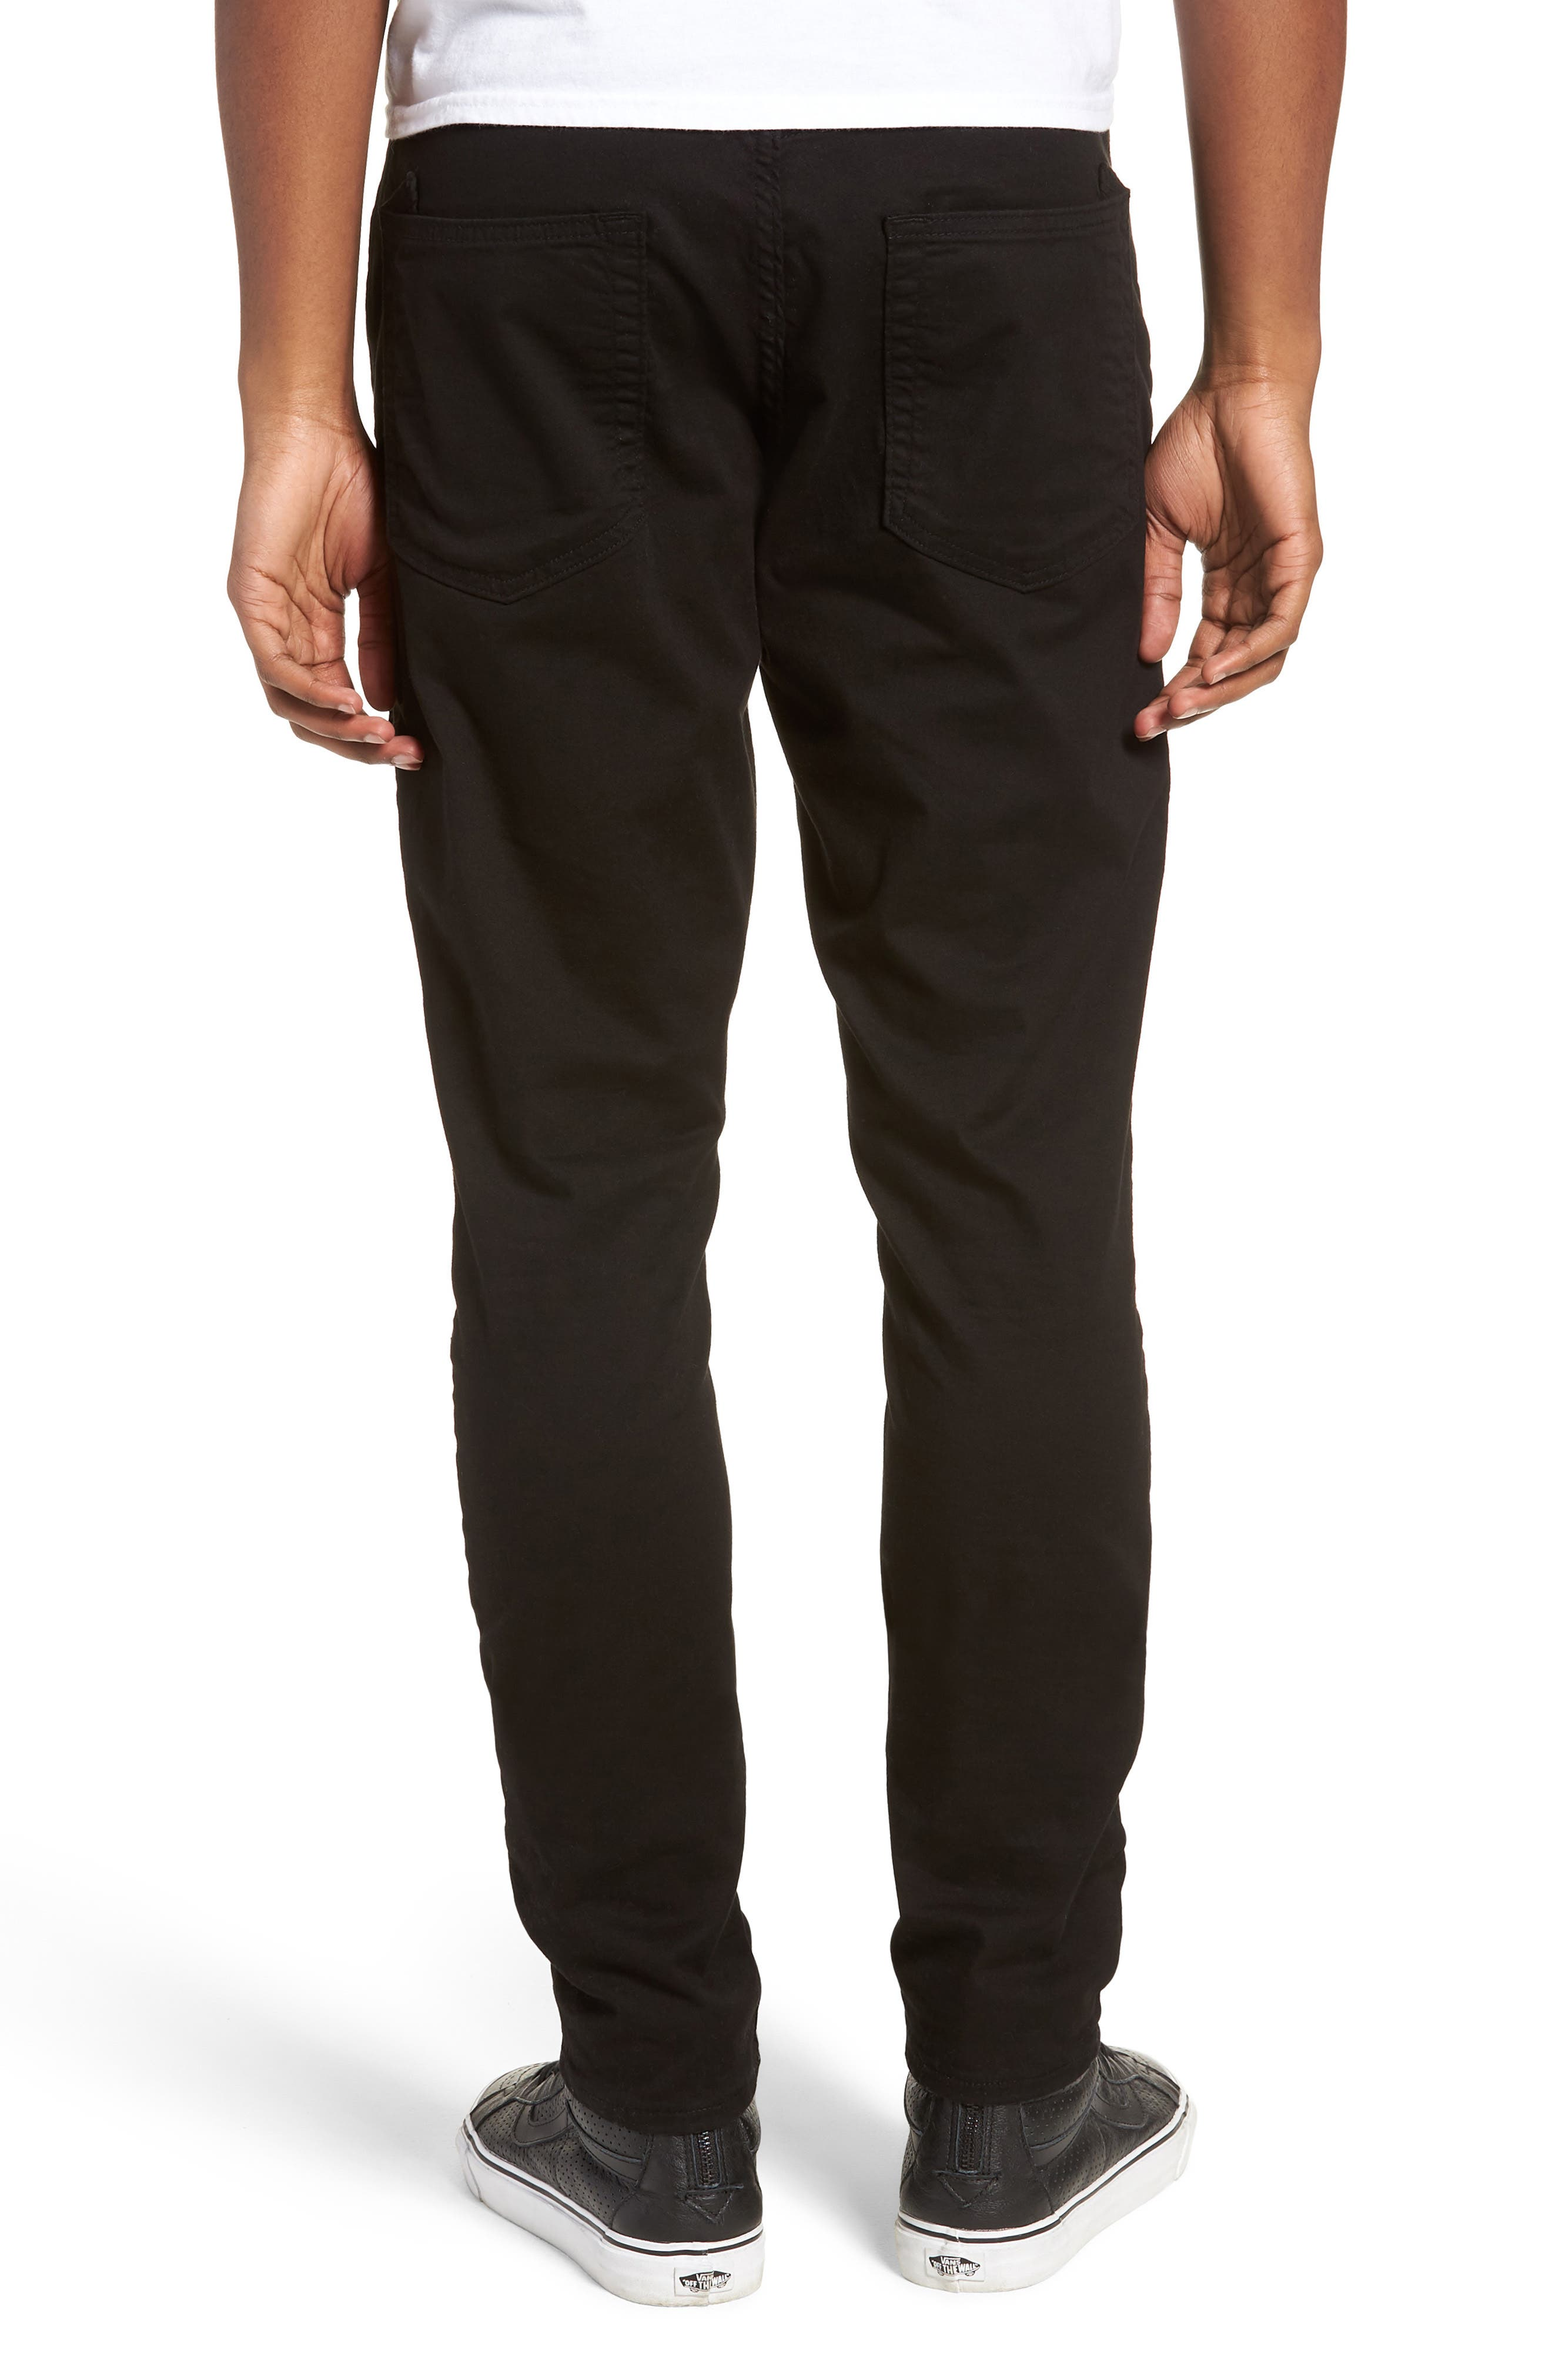 Le Sabre Slim Fit Jeans,                             Alternate thumbnail 2, color,                             Black